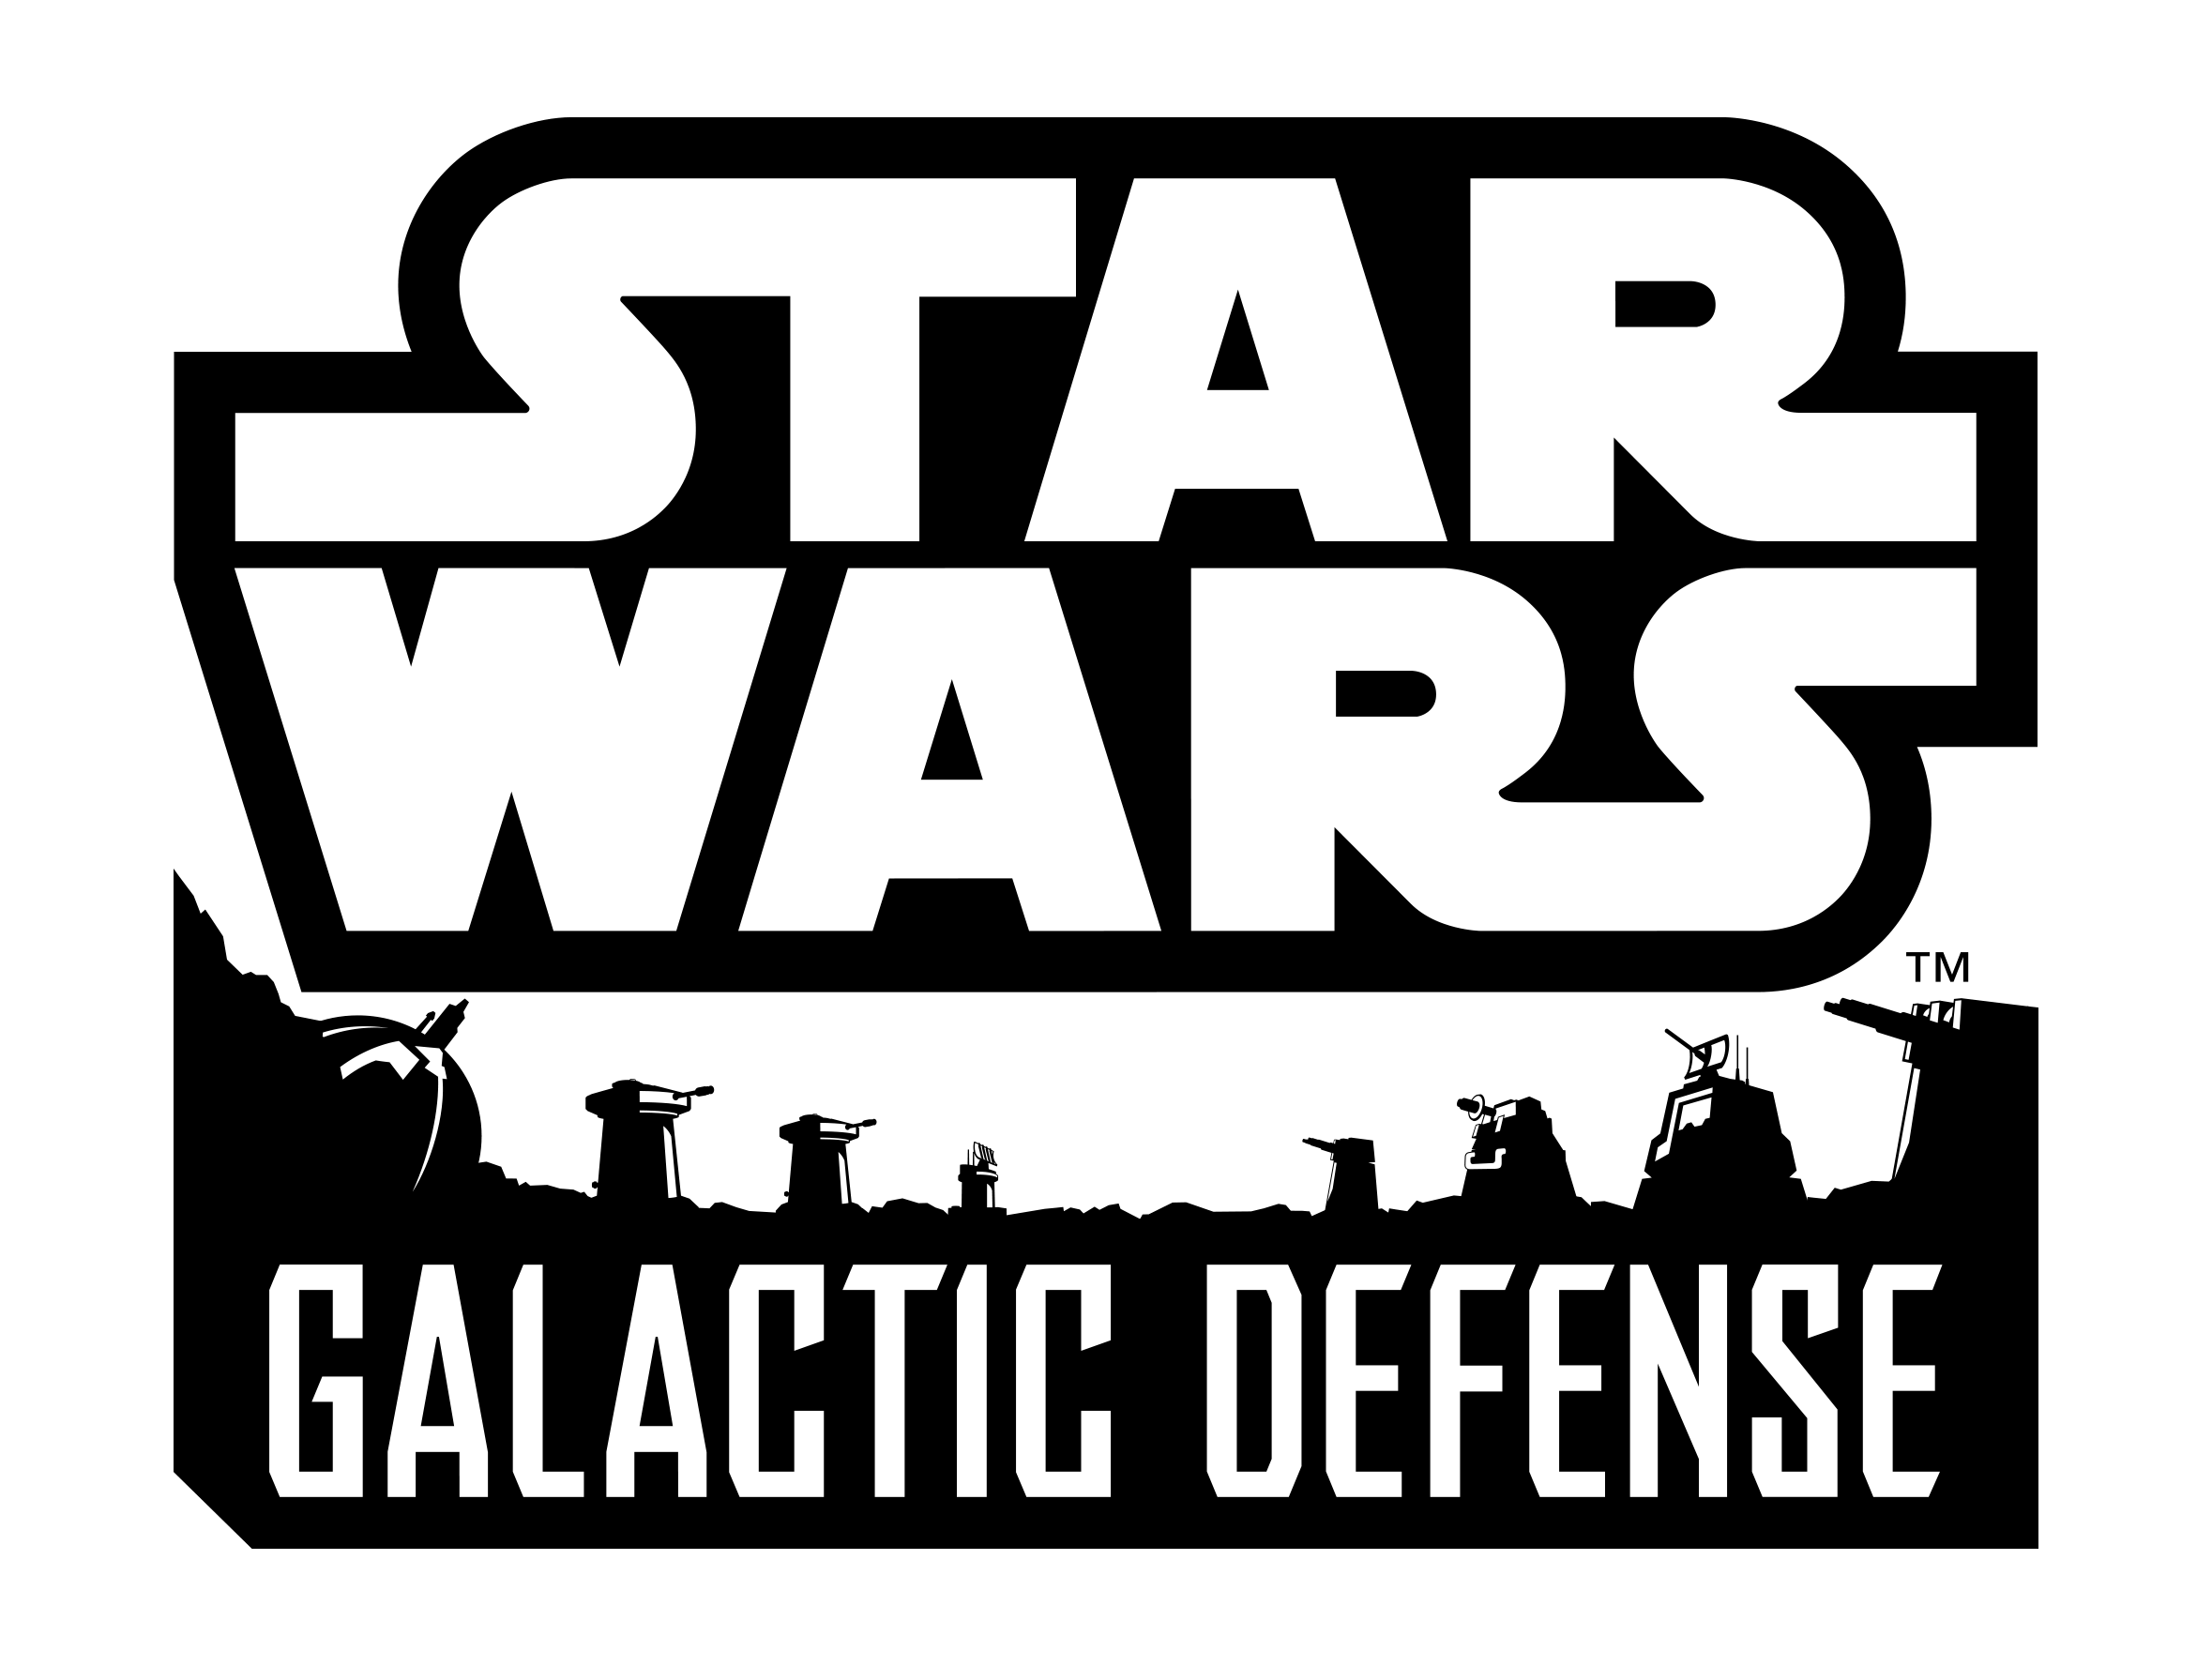 Star Wars Galactic Defense Revealed By Dena Disney And